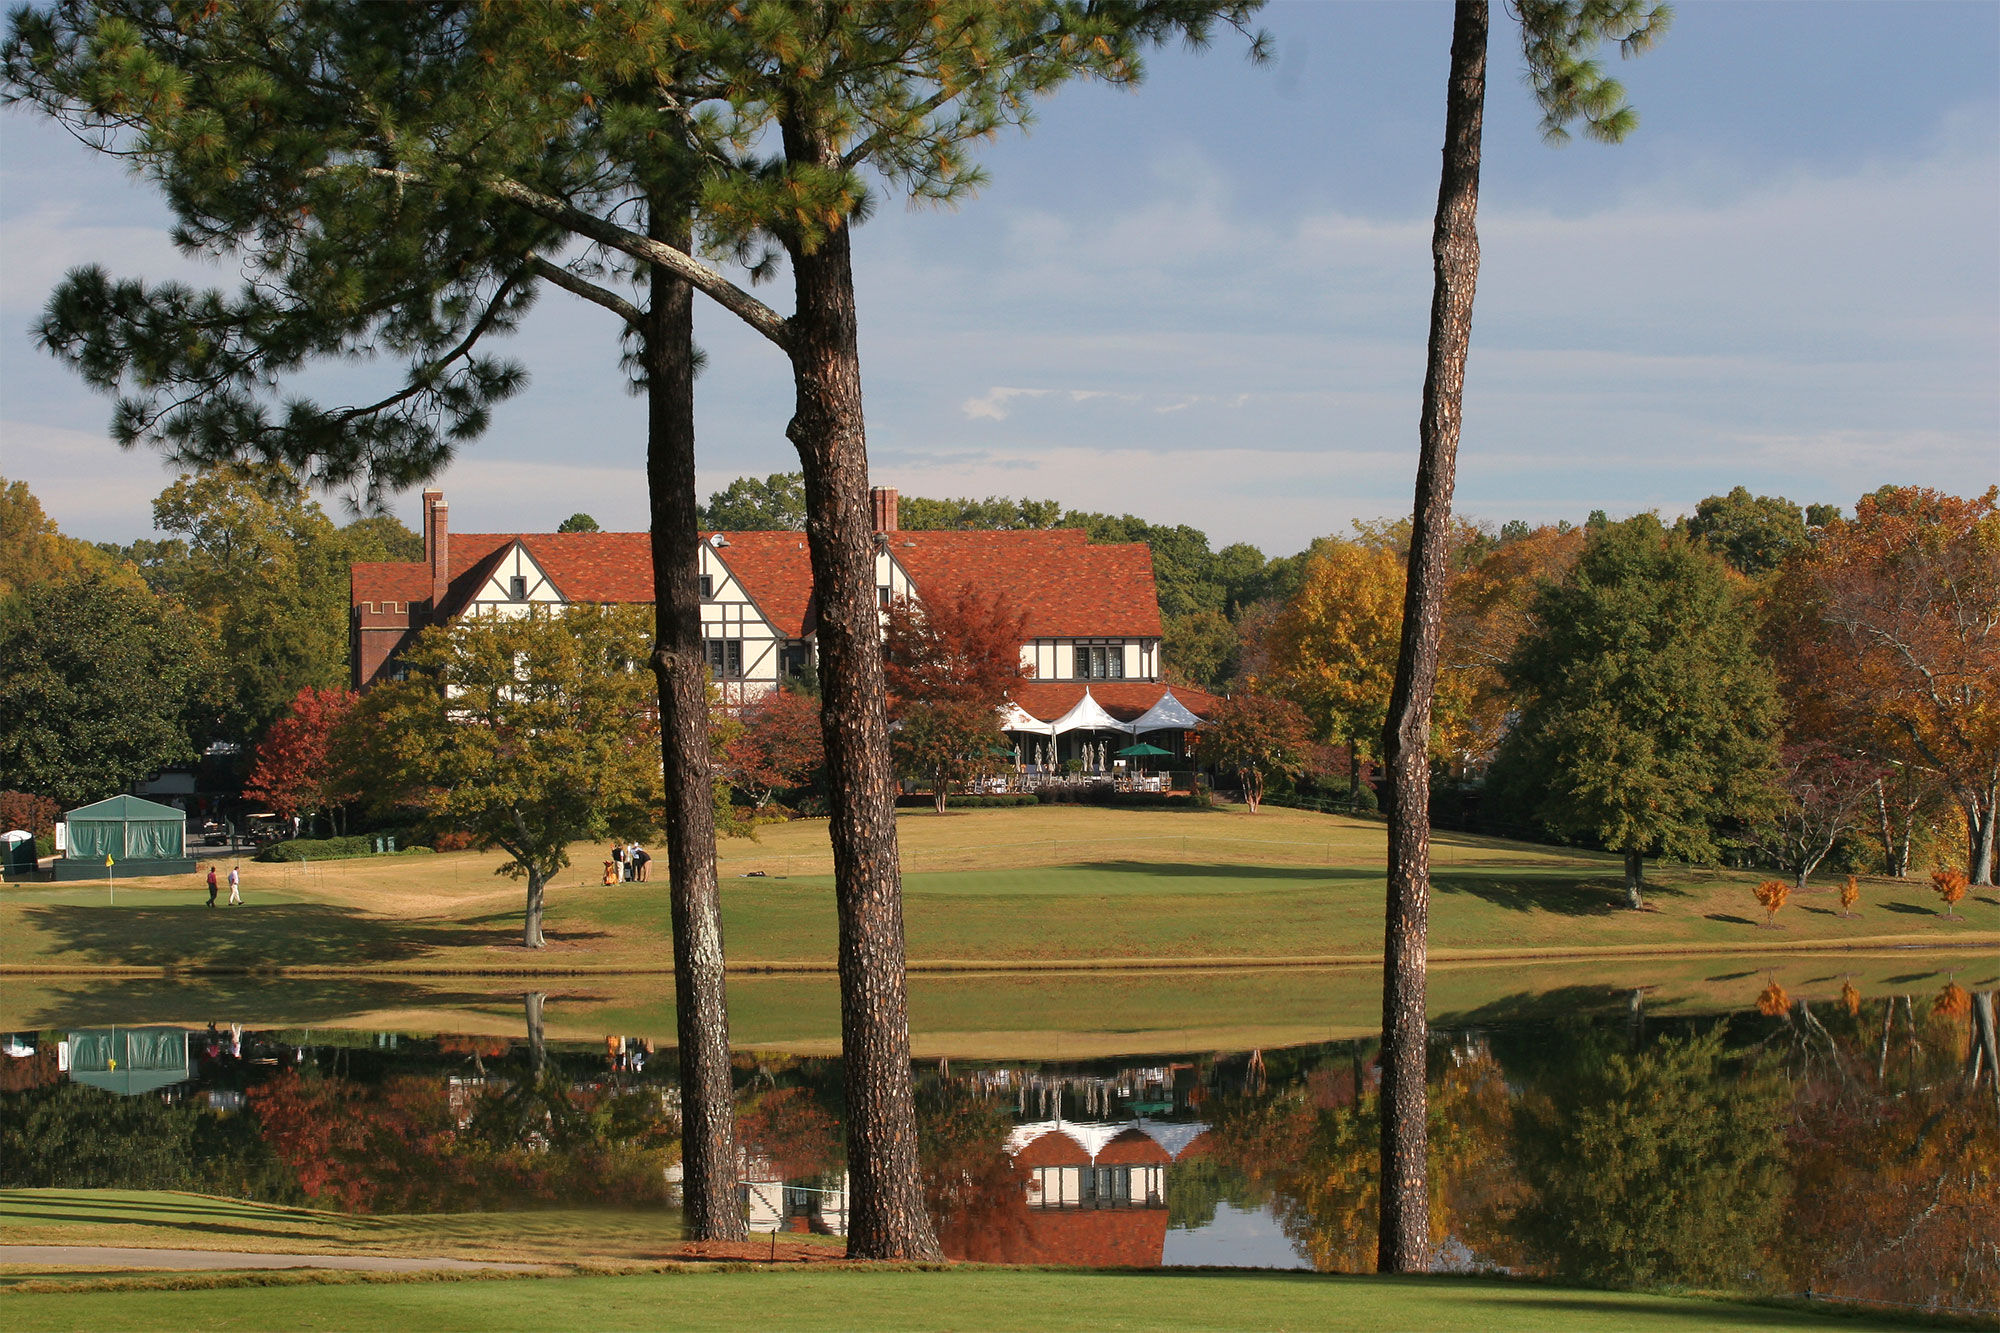 East Lake Golf Club (Atlanta), isogood | istockphoto.com/